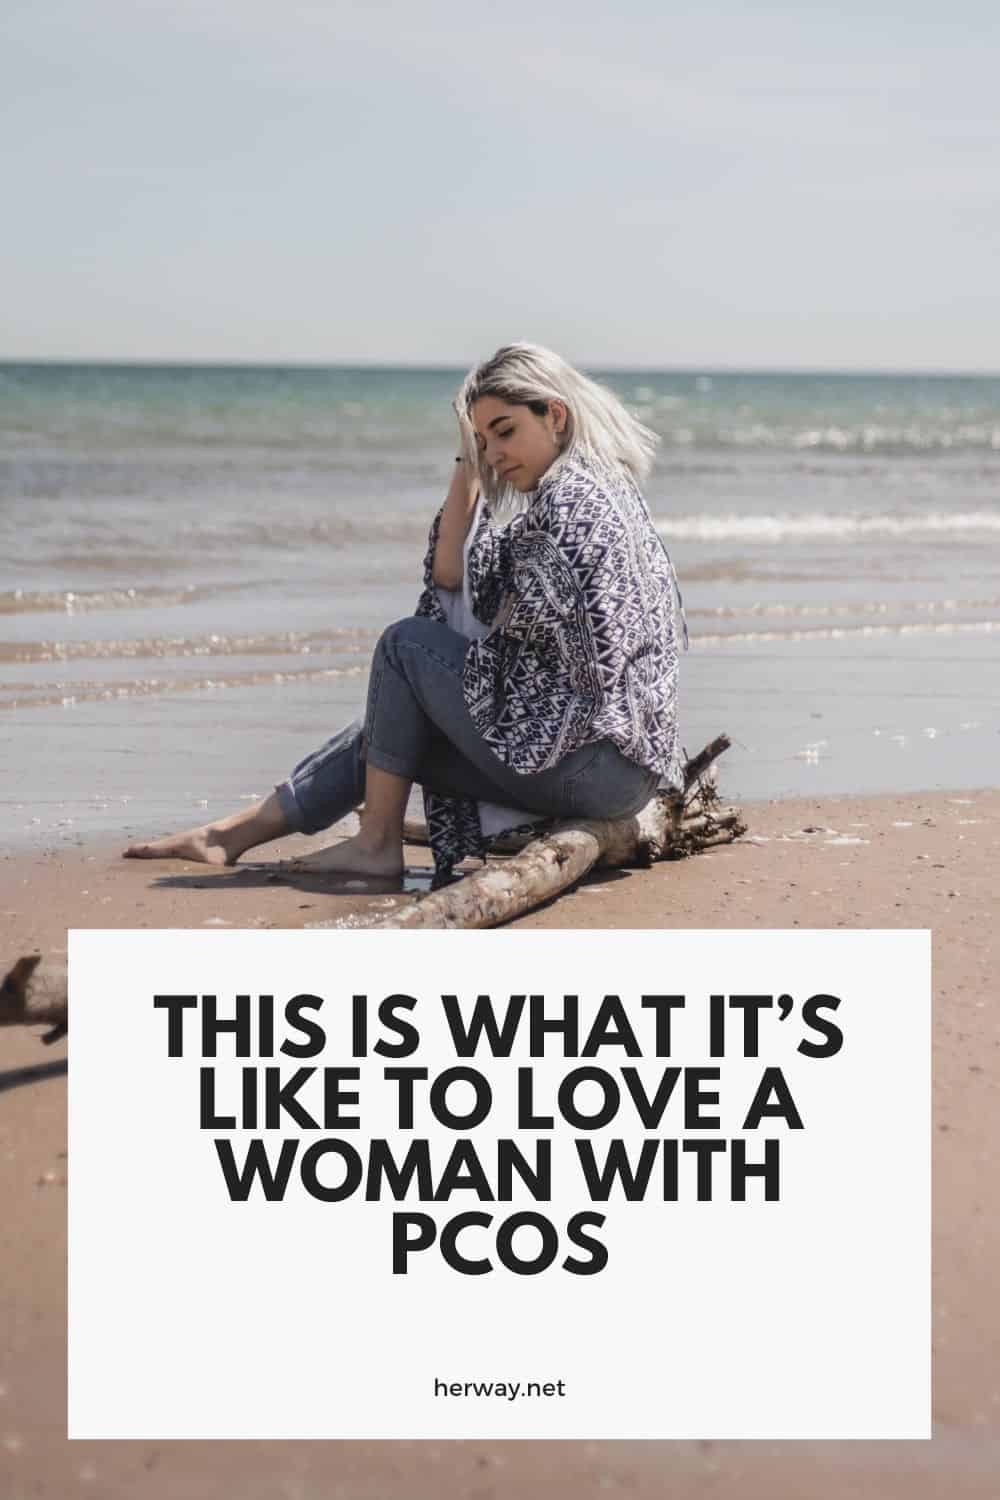 This Is What It's Like To Love A Woman With PCOS